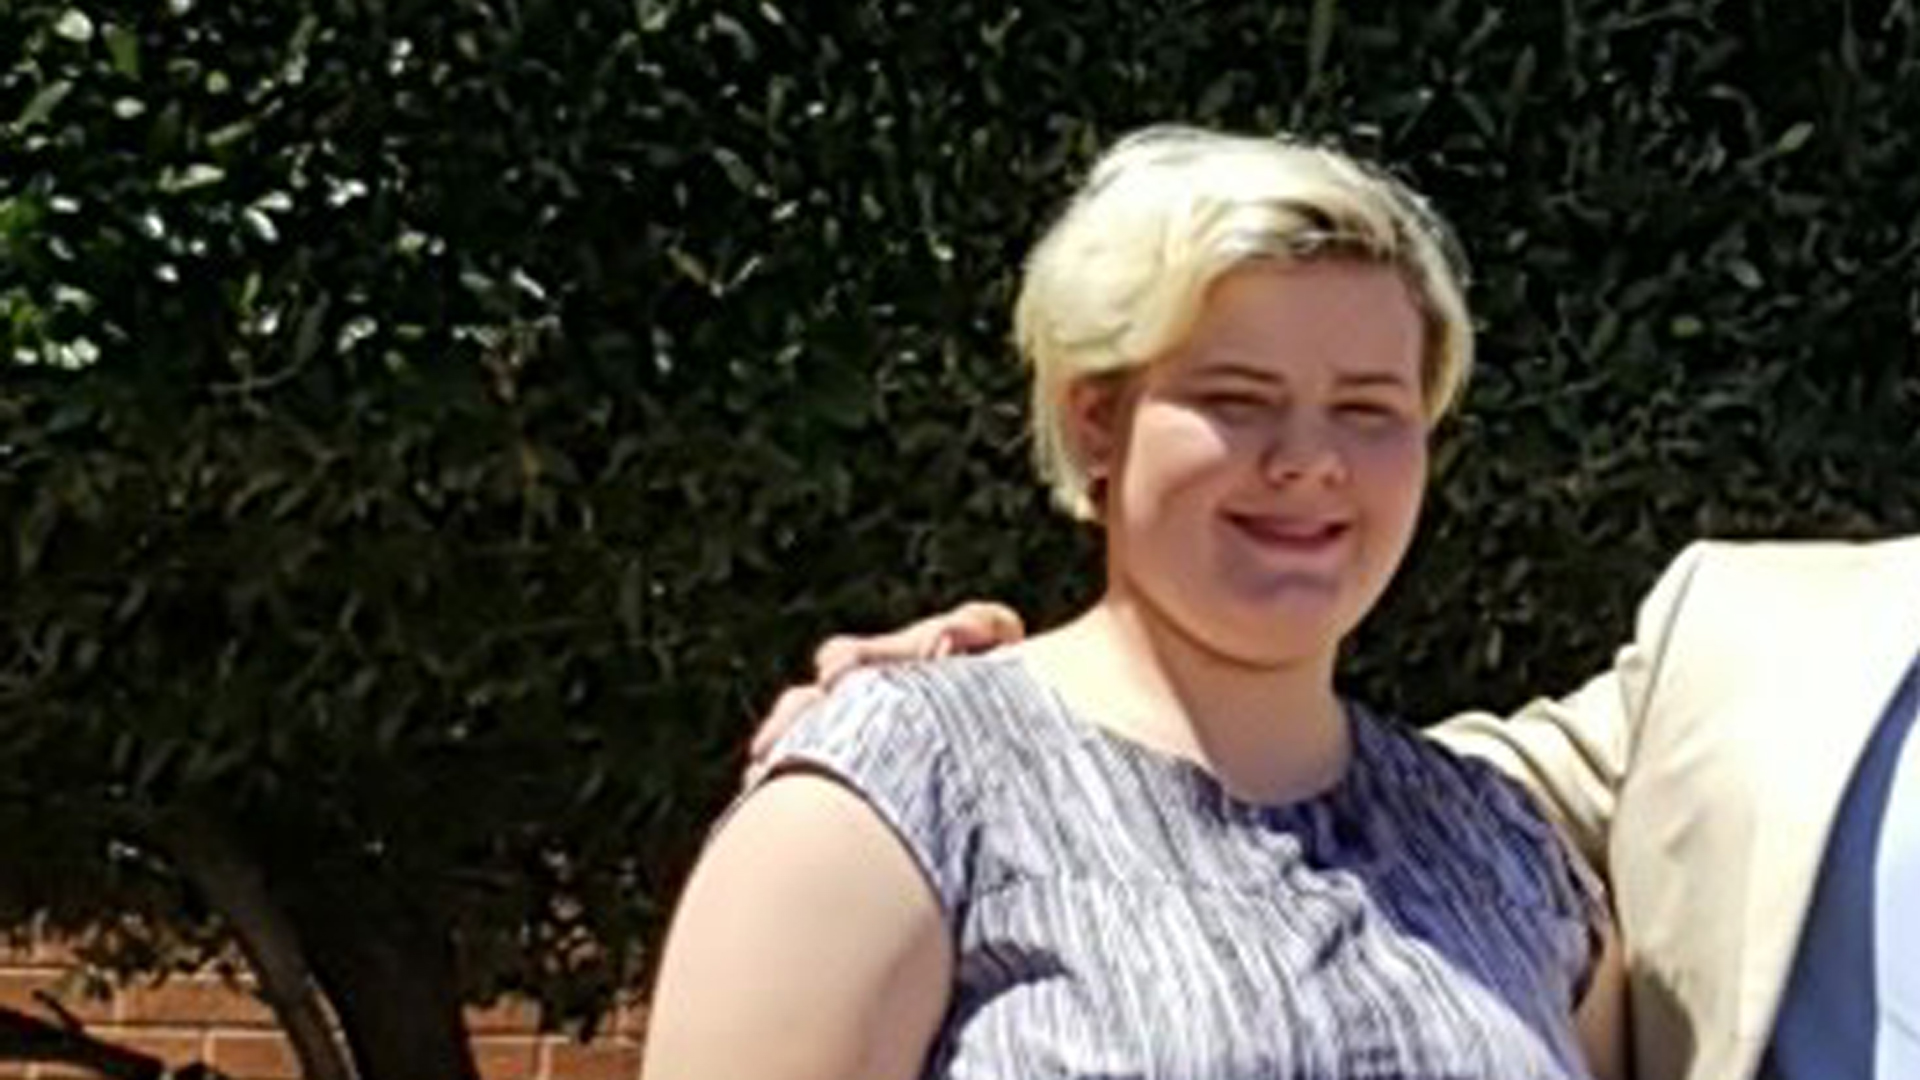 Hannah Linn Williams of Anaheim is shown in a photo provided along with a family statement following her death in a police shooting on July 5, 2019.